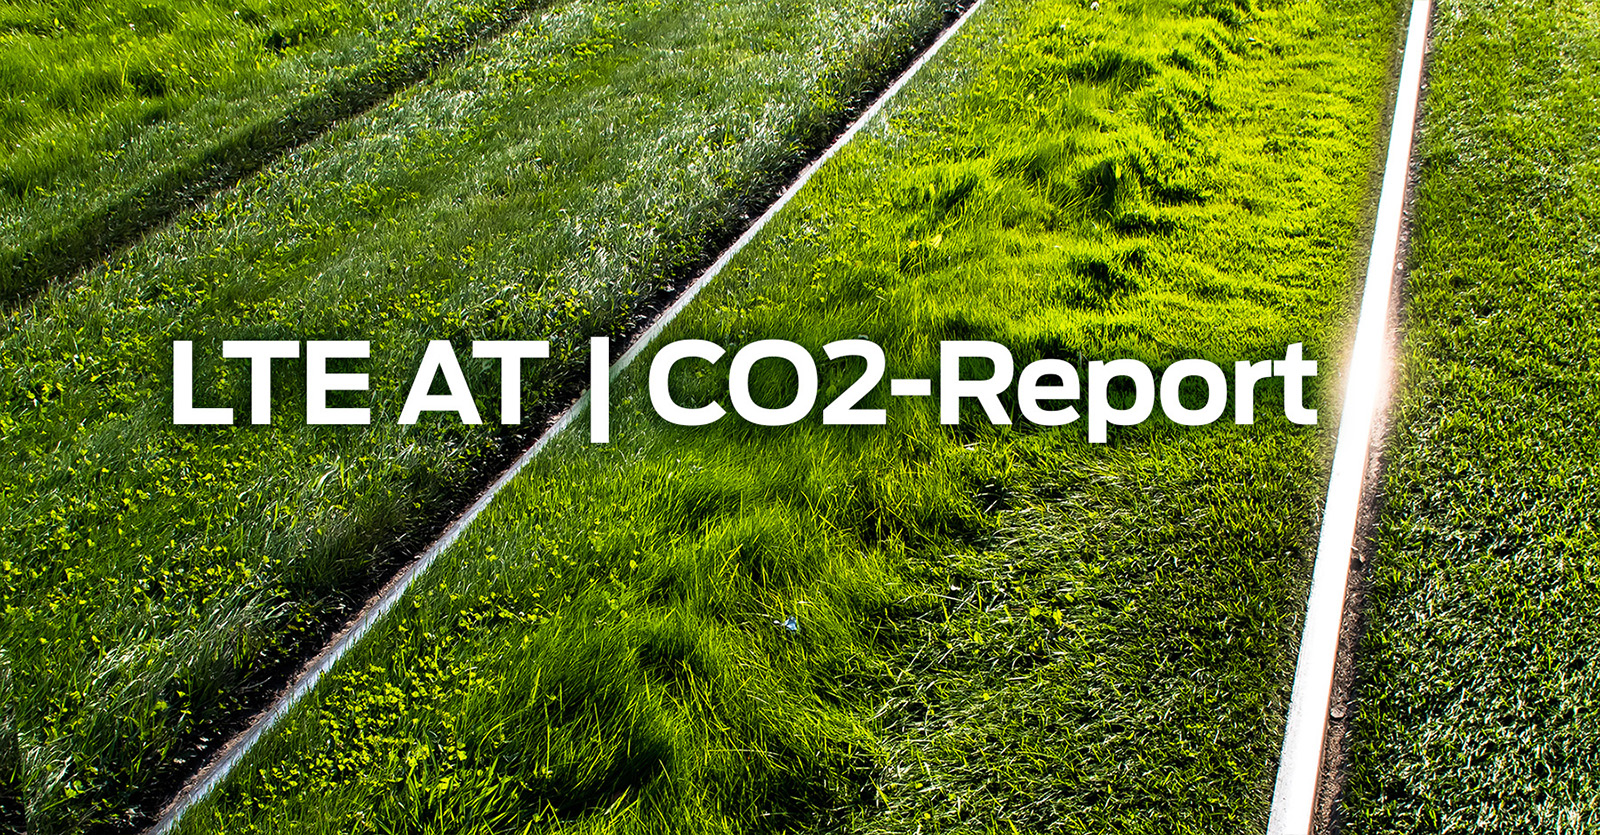 LTE AT | CO2-Report